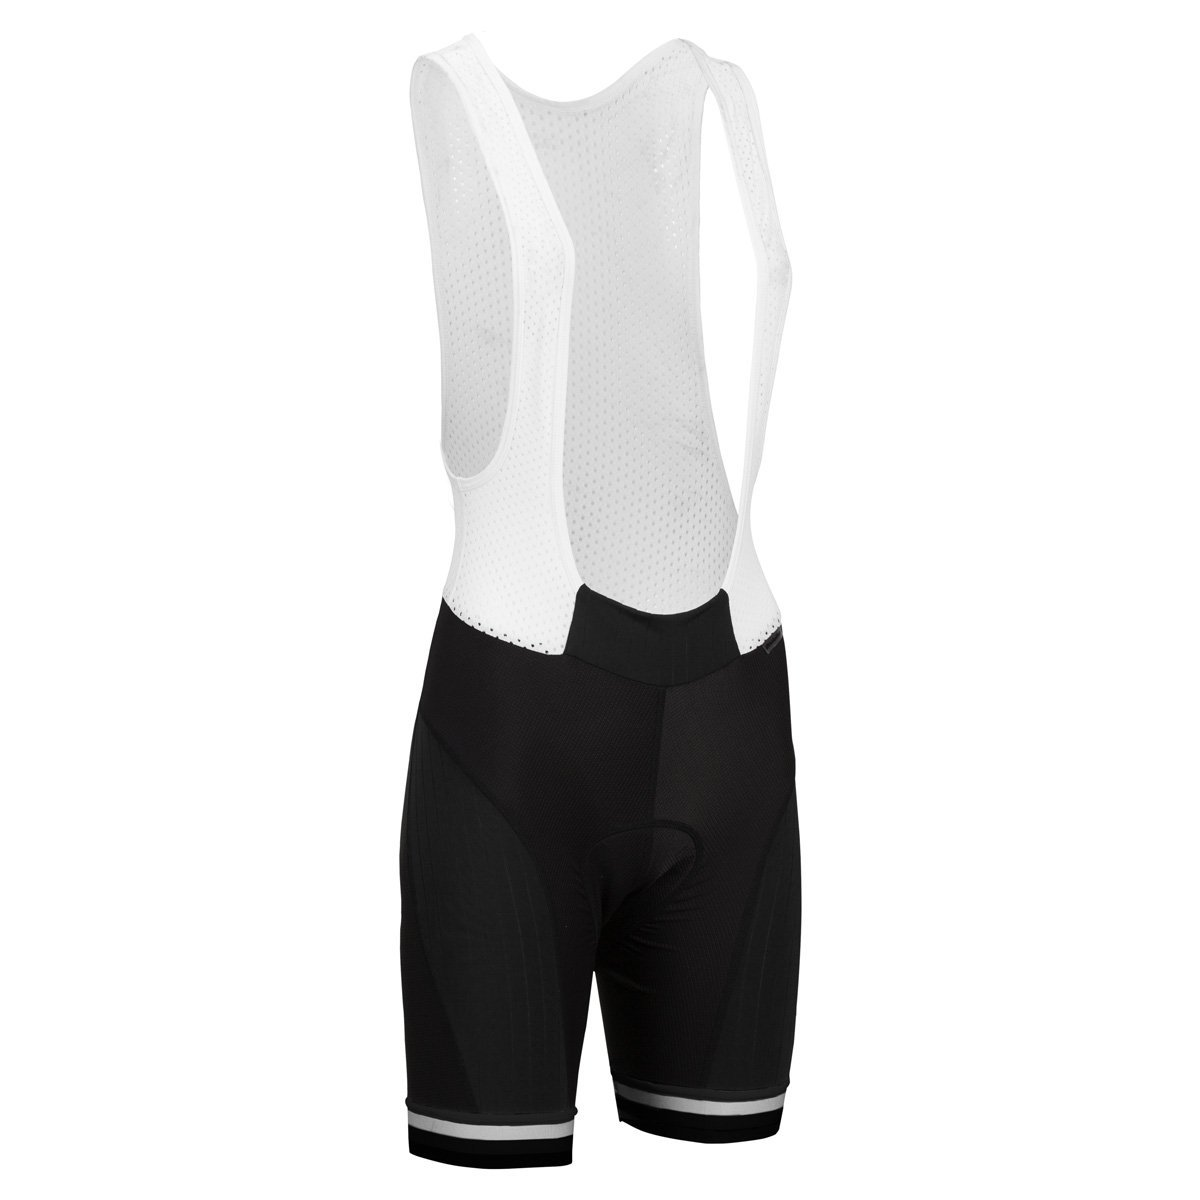 be1d430c8 Get Quotations · Bellwether 2016 Women s Forza Bib Cycling Shorts - 95694  (White ...